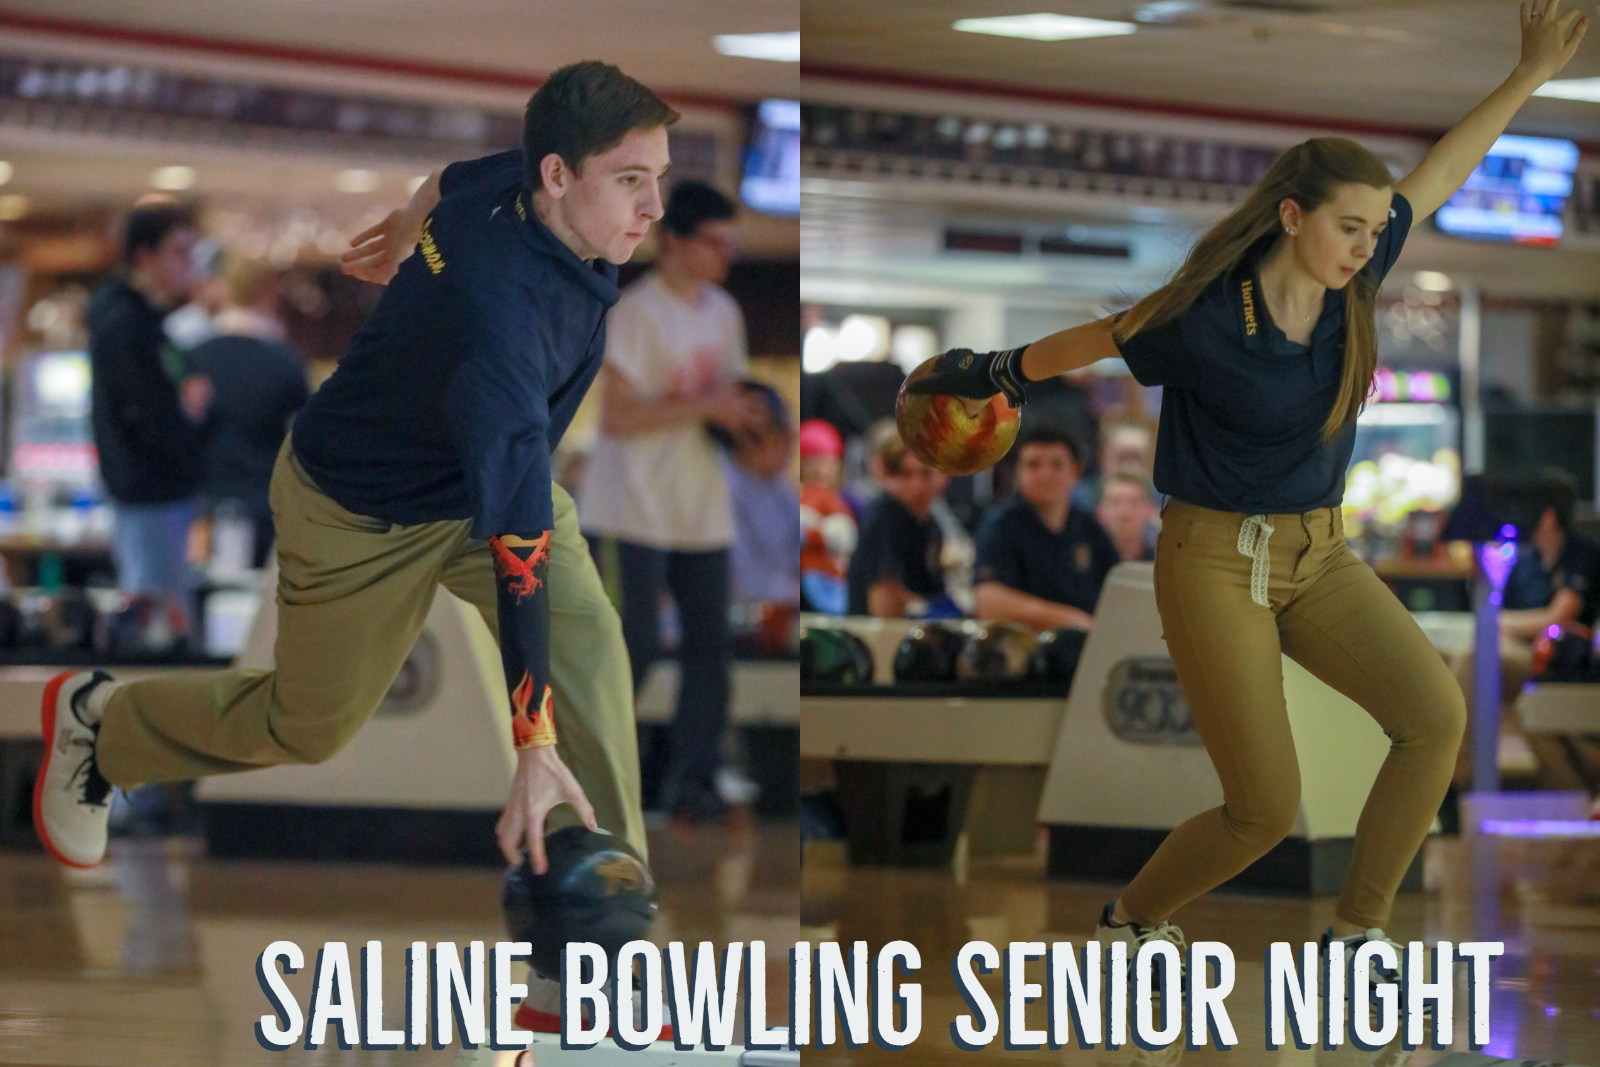 @TheSalinePost: Huron Takes Saline on Tie-breaker to Dash Saline's SEC Red Title Hopes